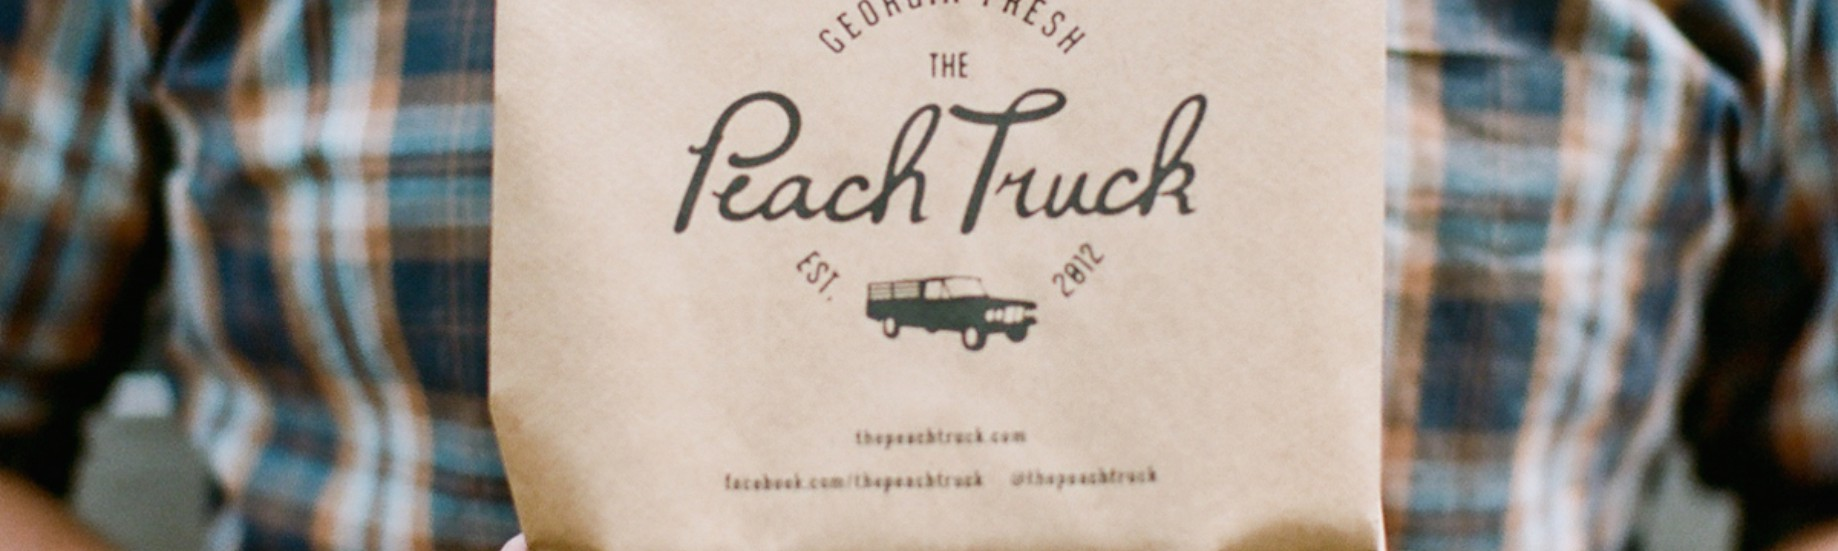 All You Need is Love (a story about The Peach Truck)